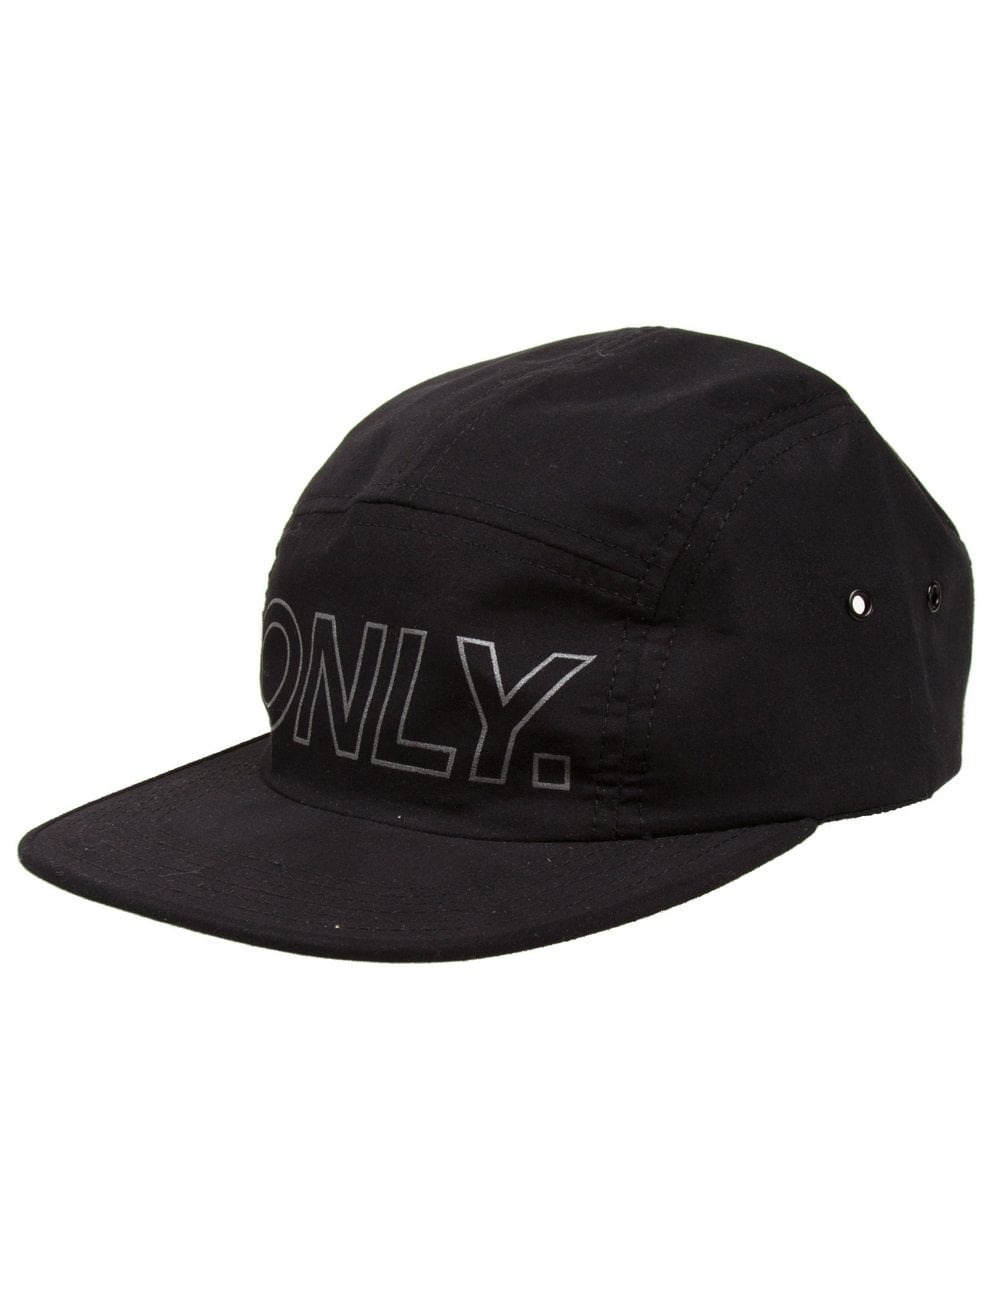 2cf89af1ec4 Only NY Clothing Reflective Logo 5 Panel Hat - Black - Accessories ...